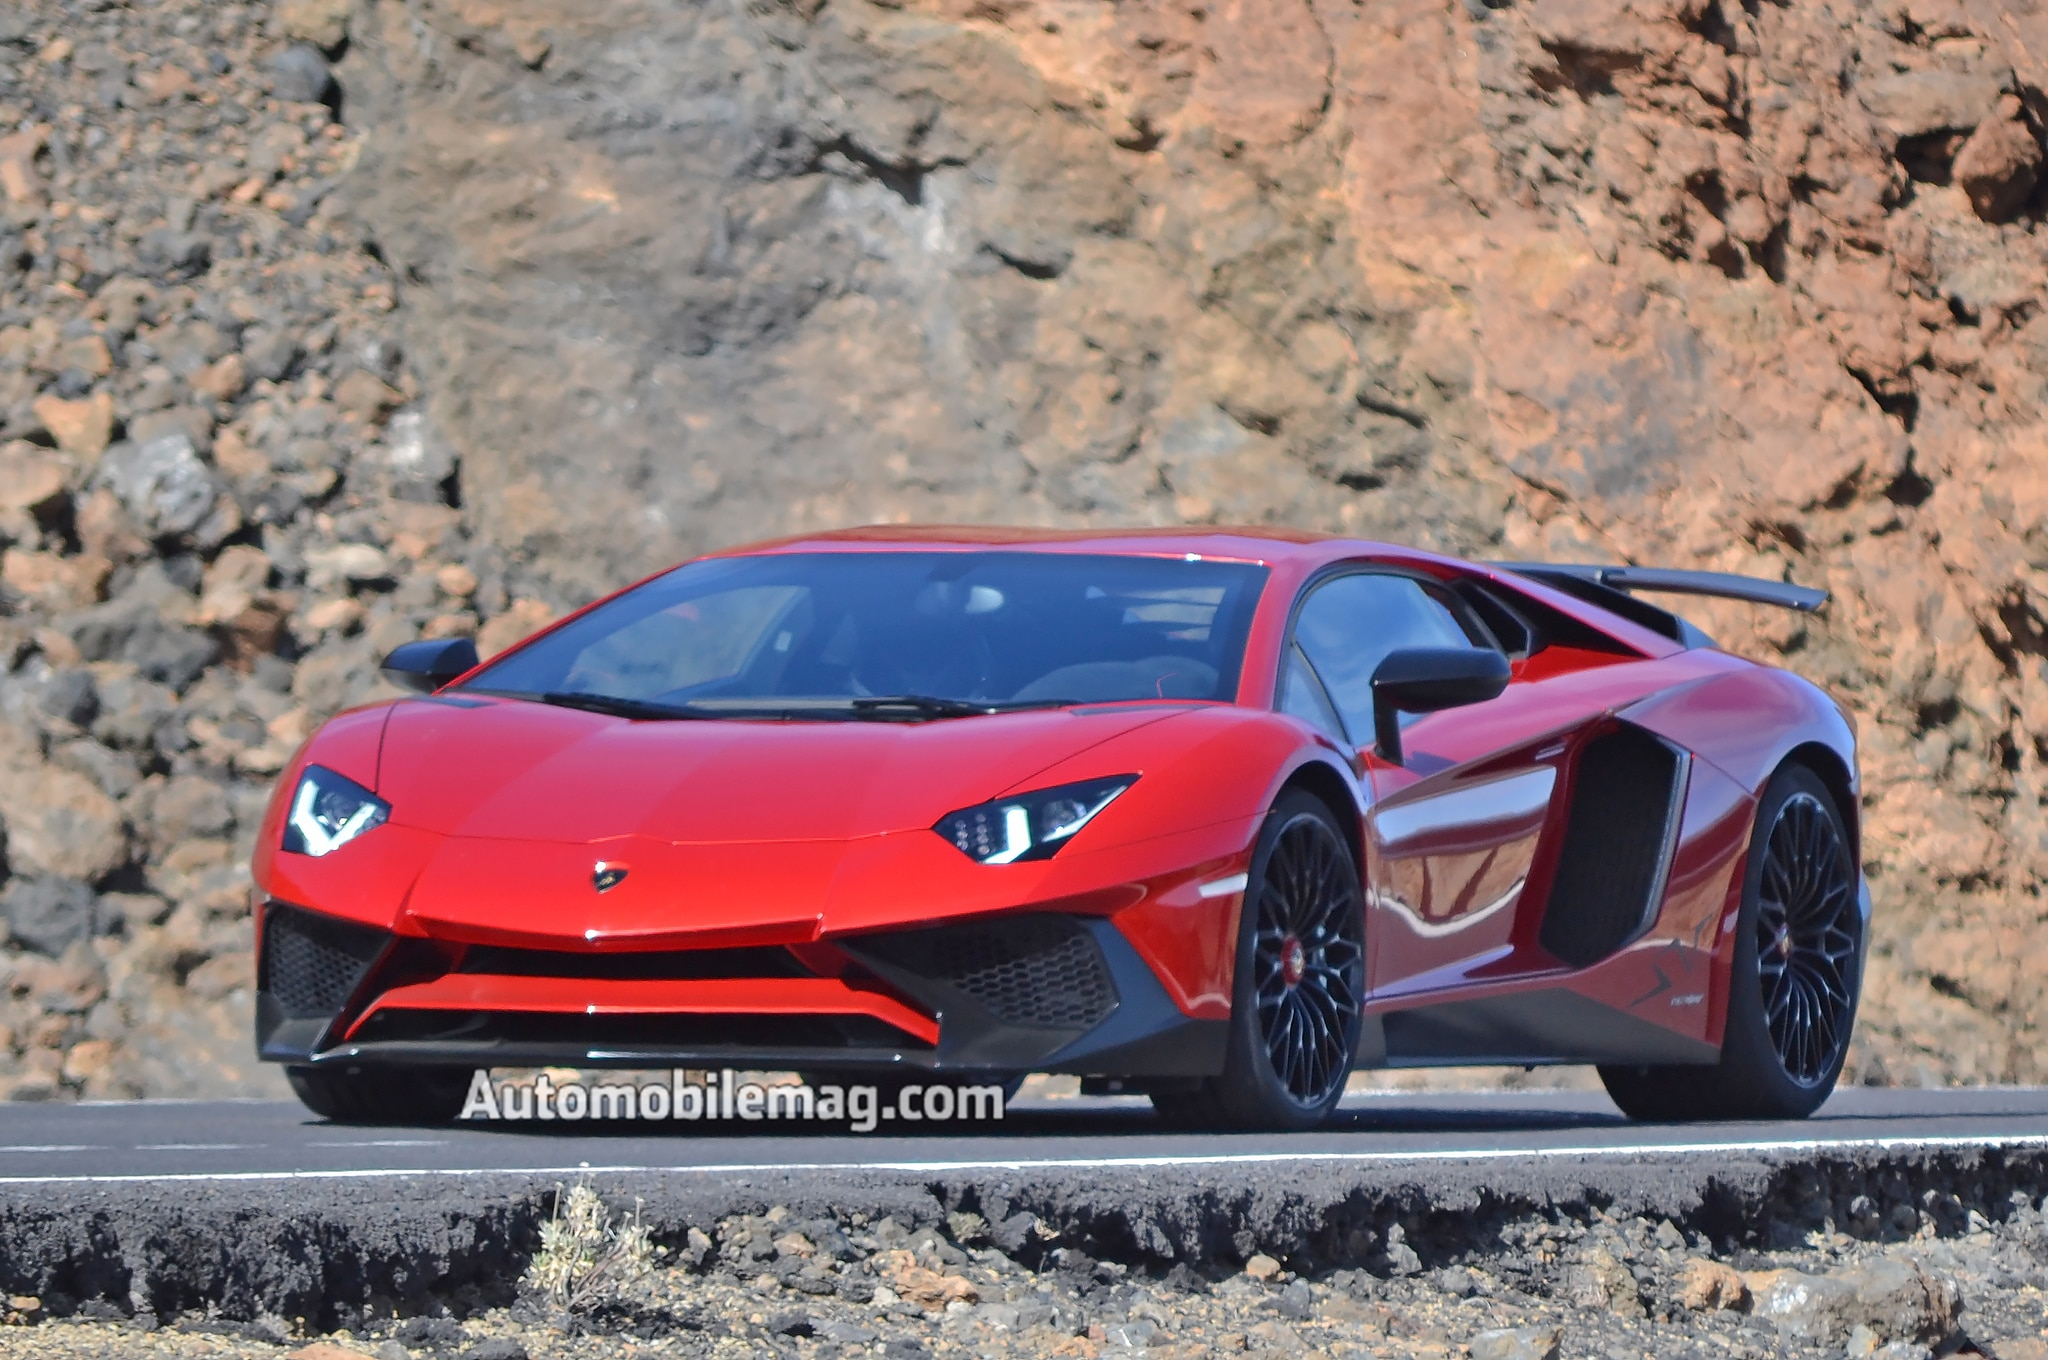 undisguised lamborghini aventador sv spied on the road. Black Bedroom Furniture Sets. Home Design Ideas